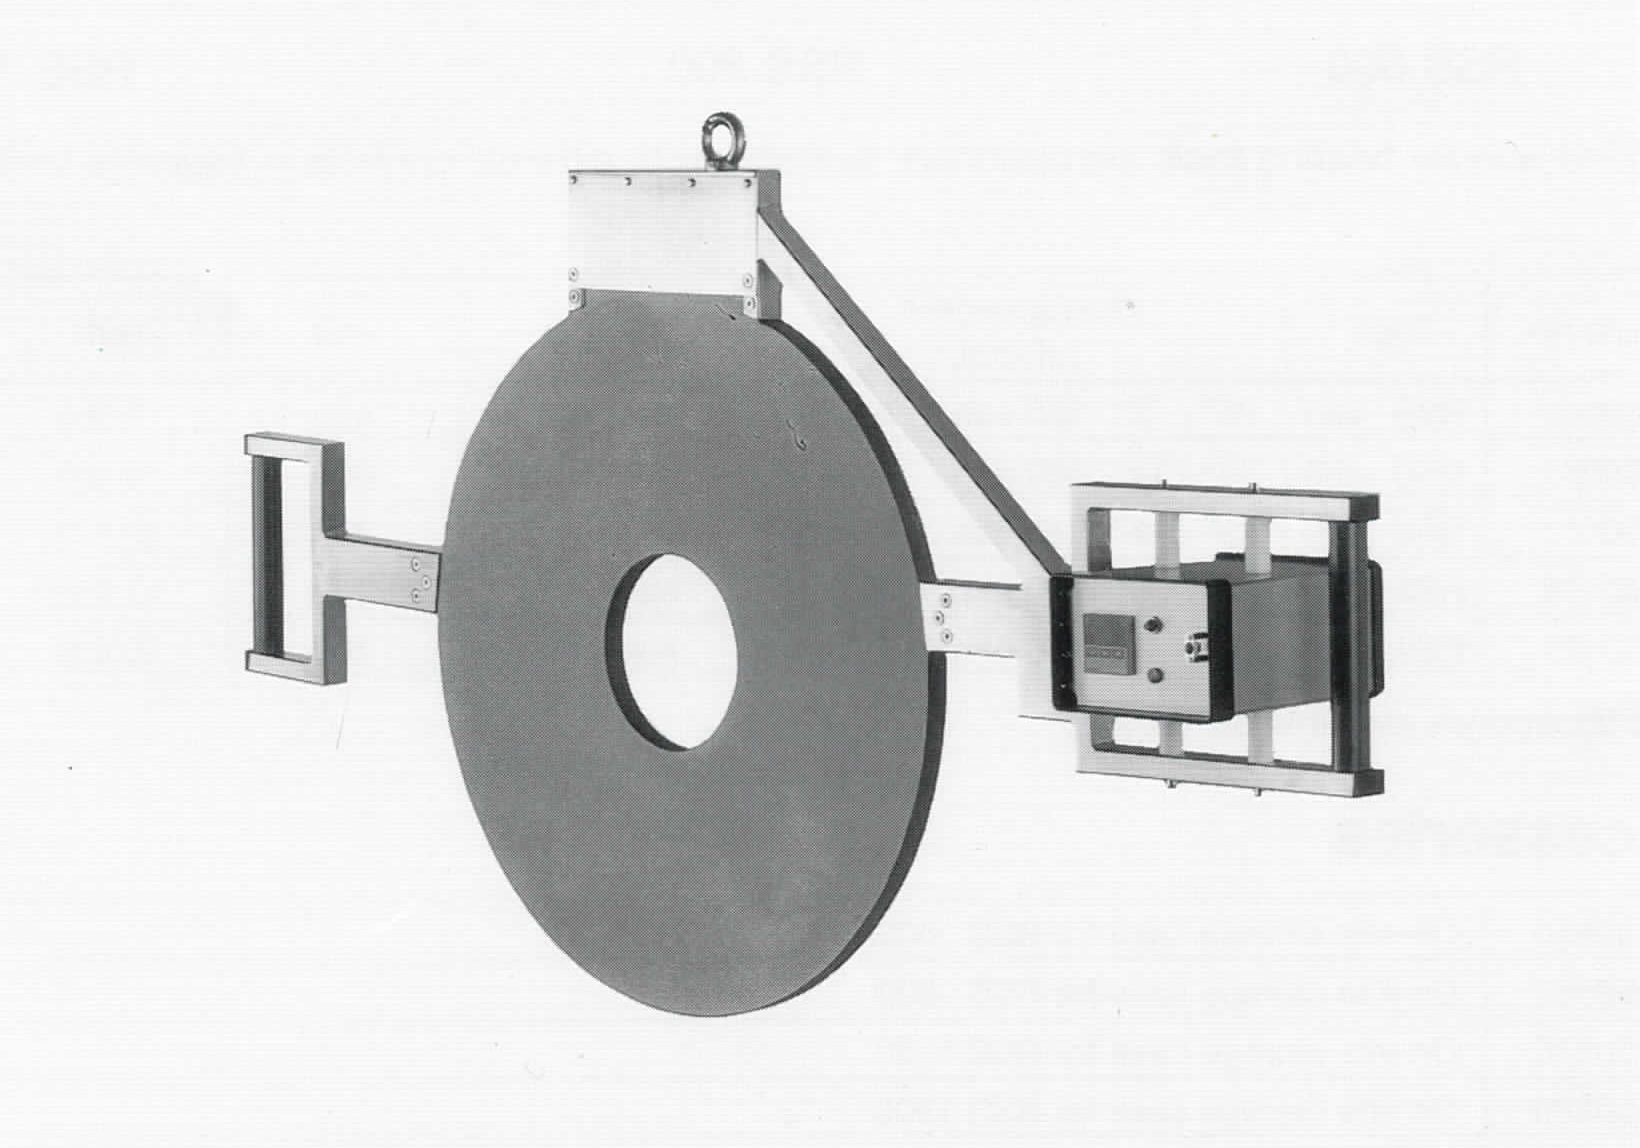 Round Annular Butt Fusion Welding Heating Plate